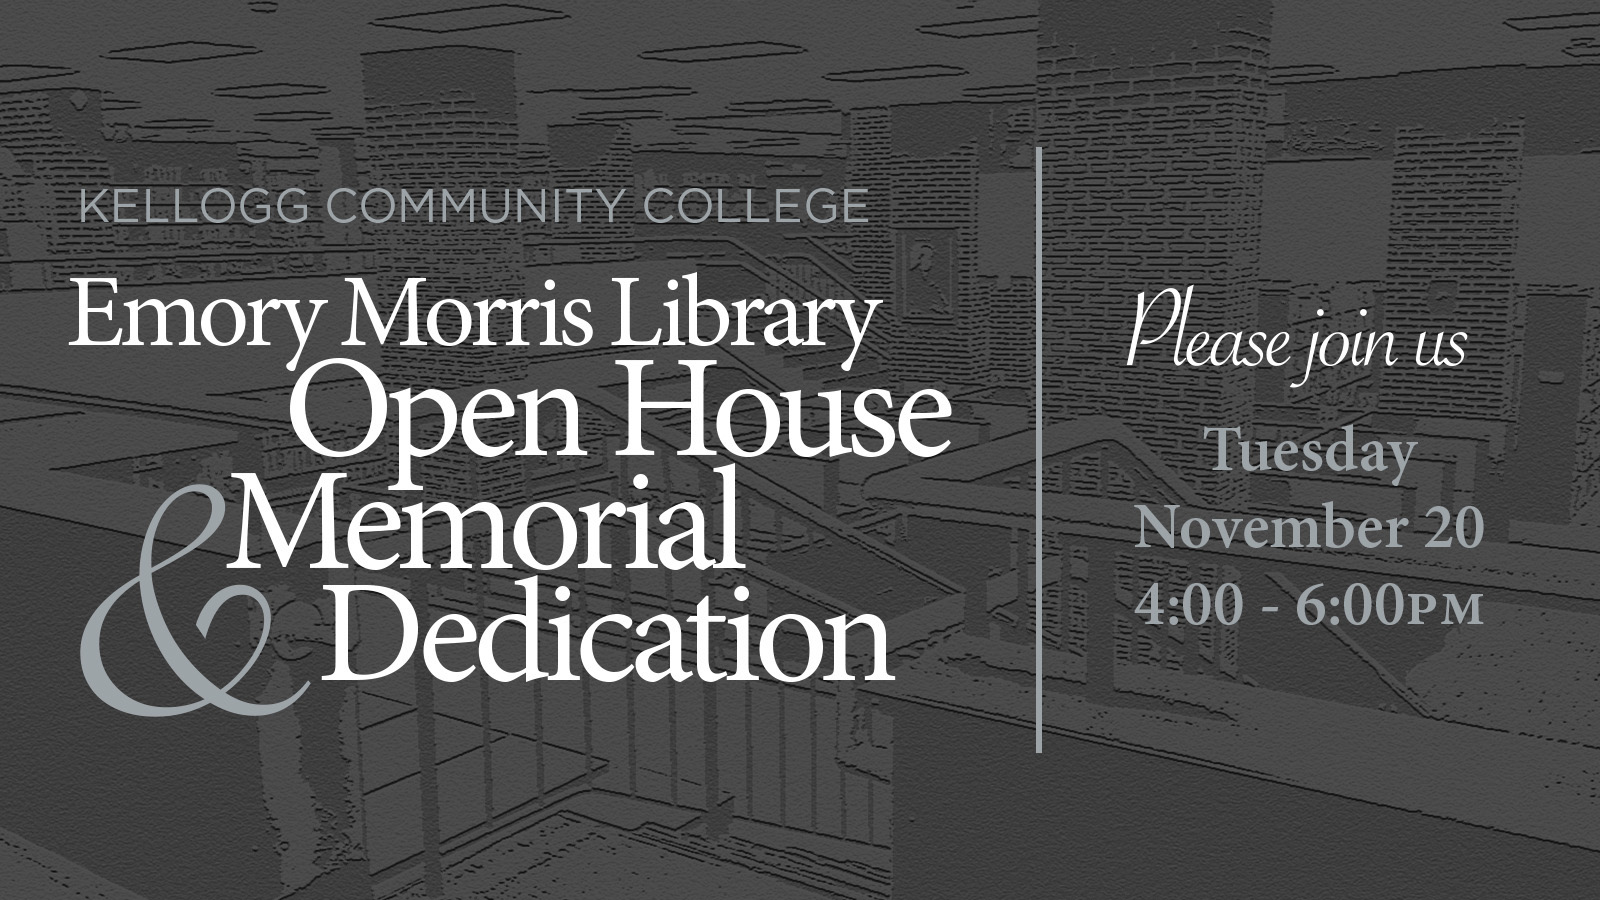 A text slide promoting KCC's Emory Morris Library Open House & Dedication event, scheduled for 4 to 6 p.m. Tuesday, Nov. 20, 2018.